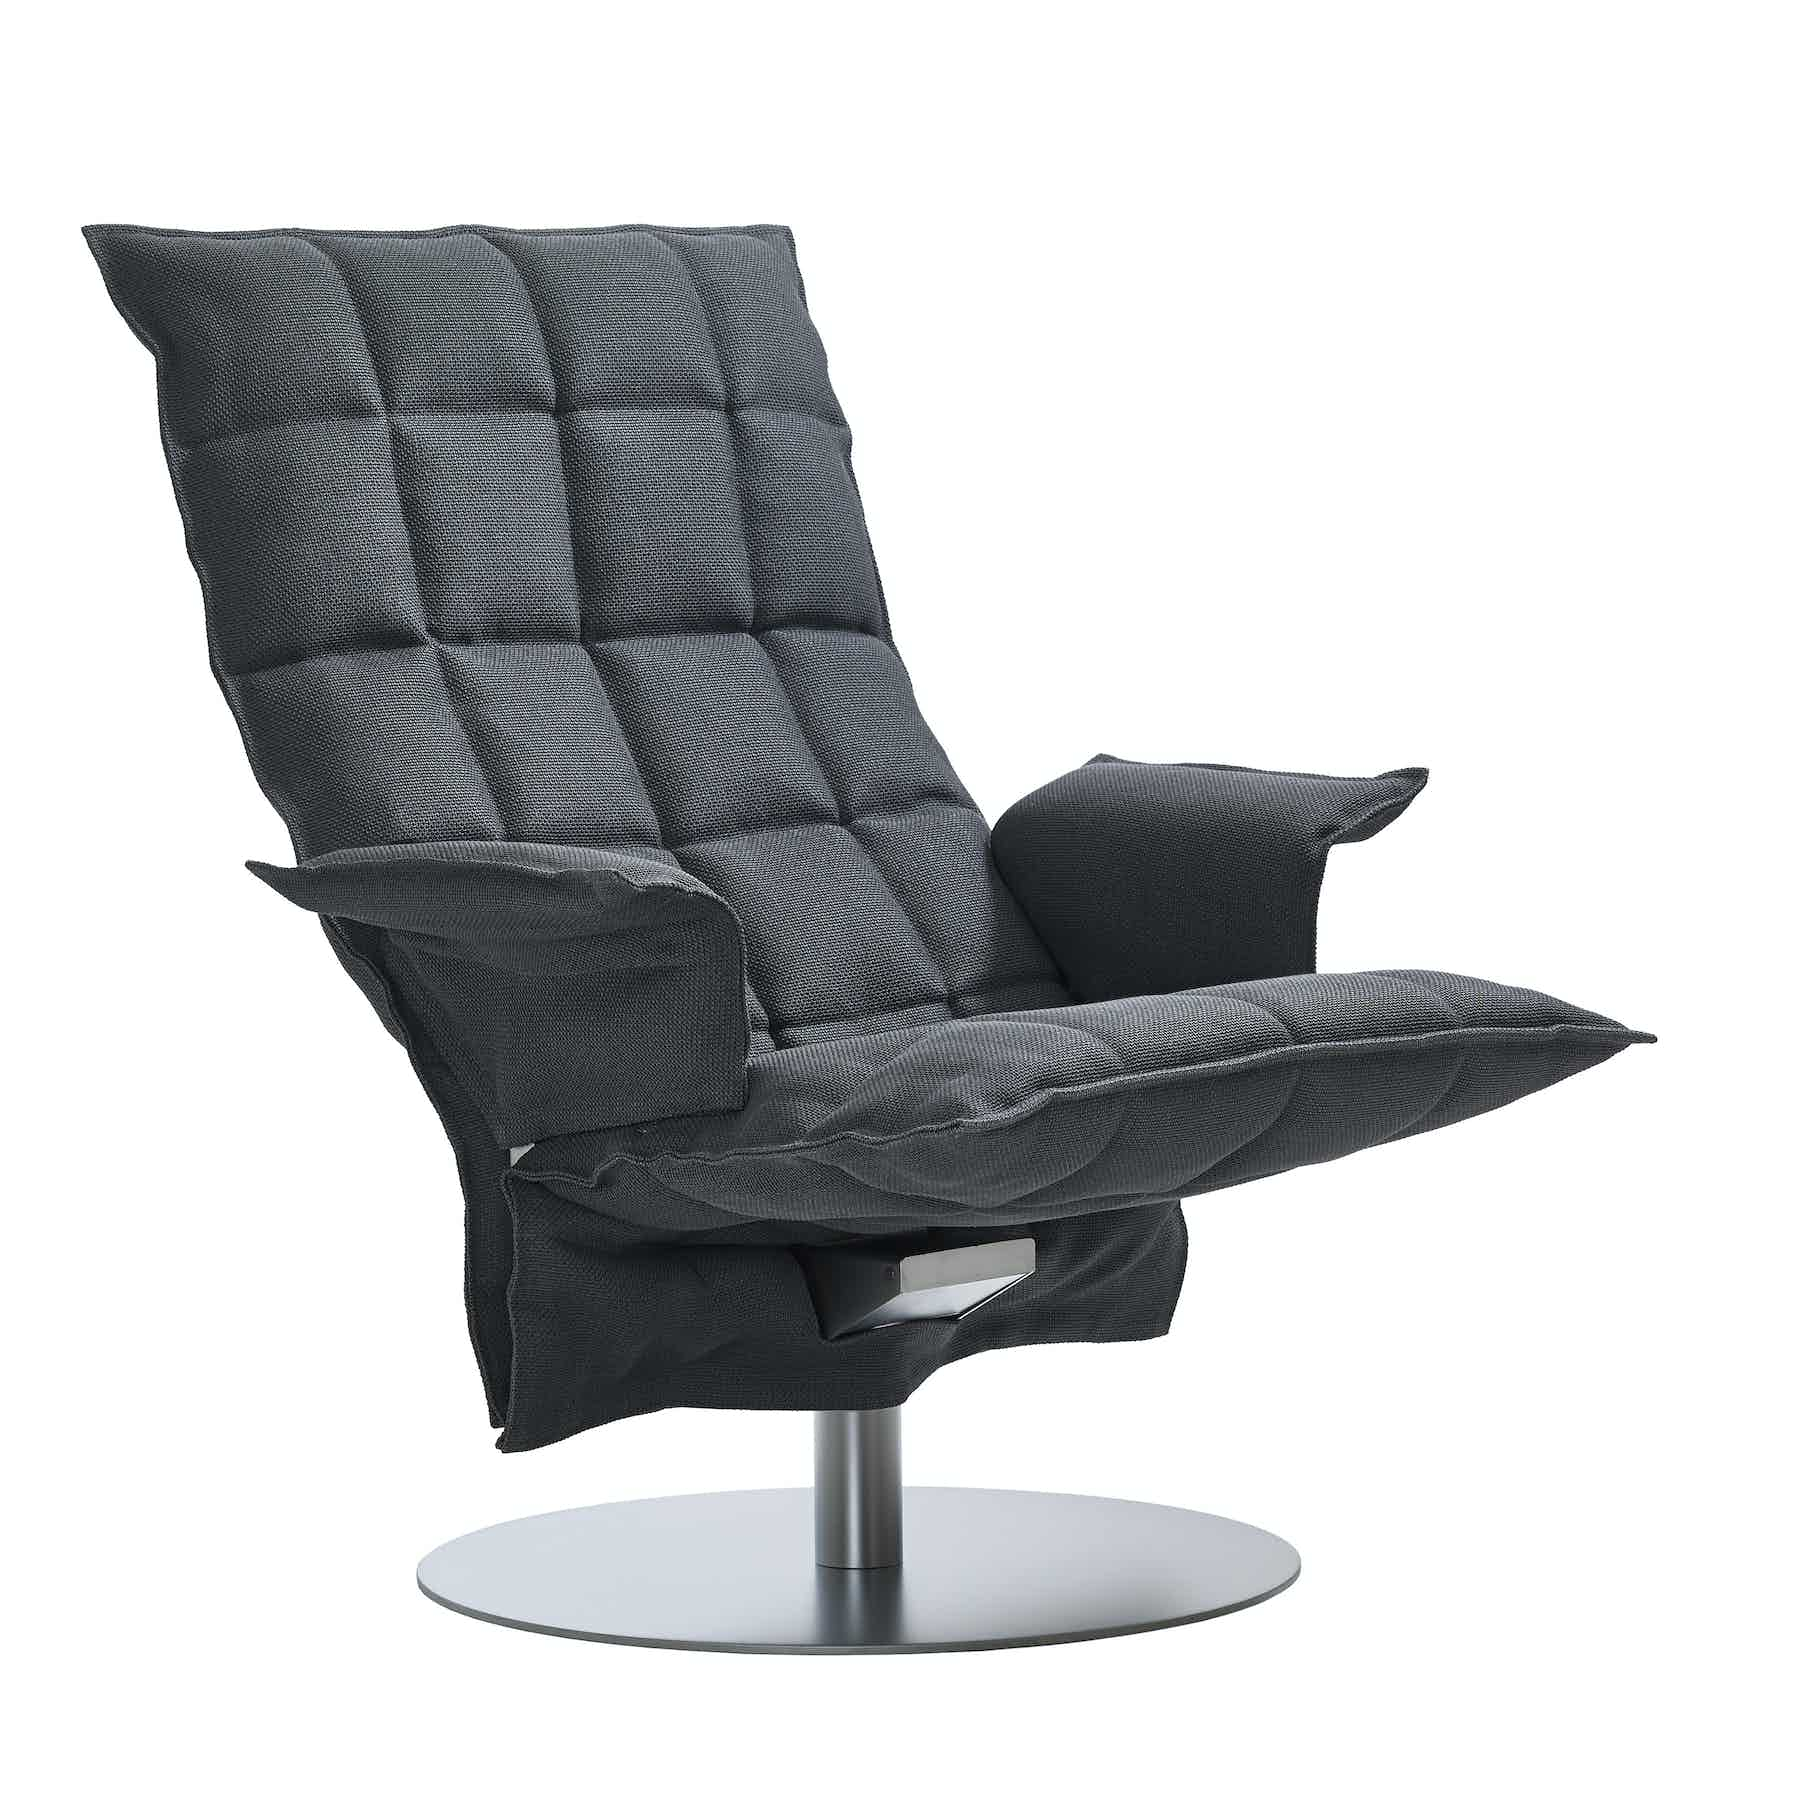 46009 Swivel k Chair with armrests 1